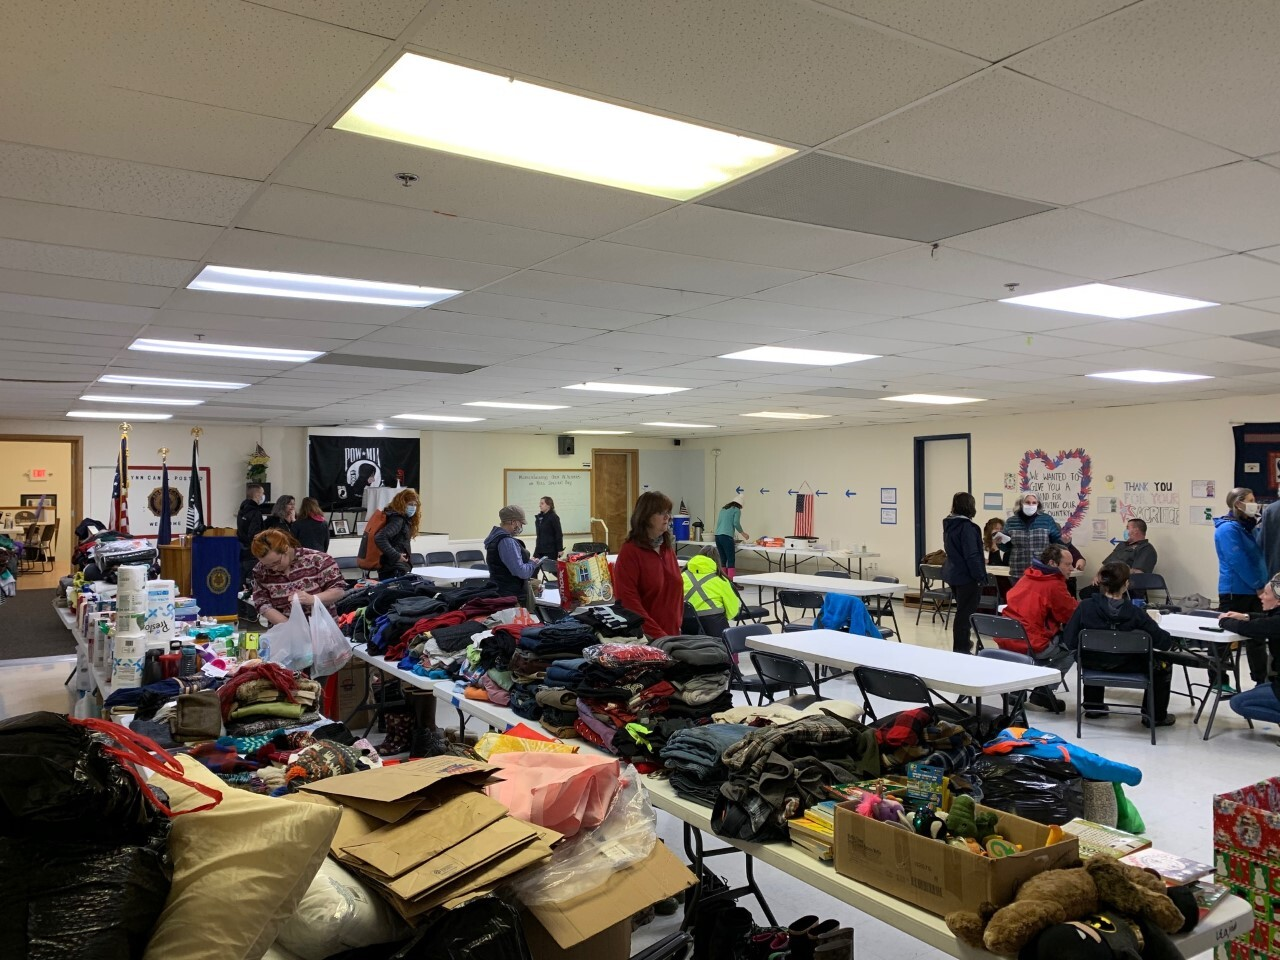 Donations piled up at the American Legion Hall in Haines